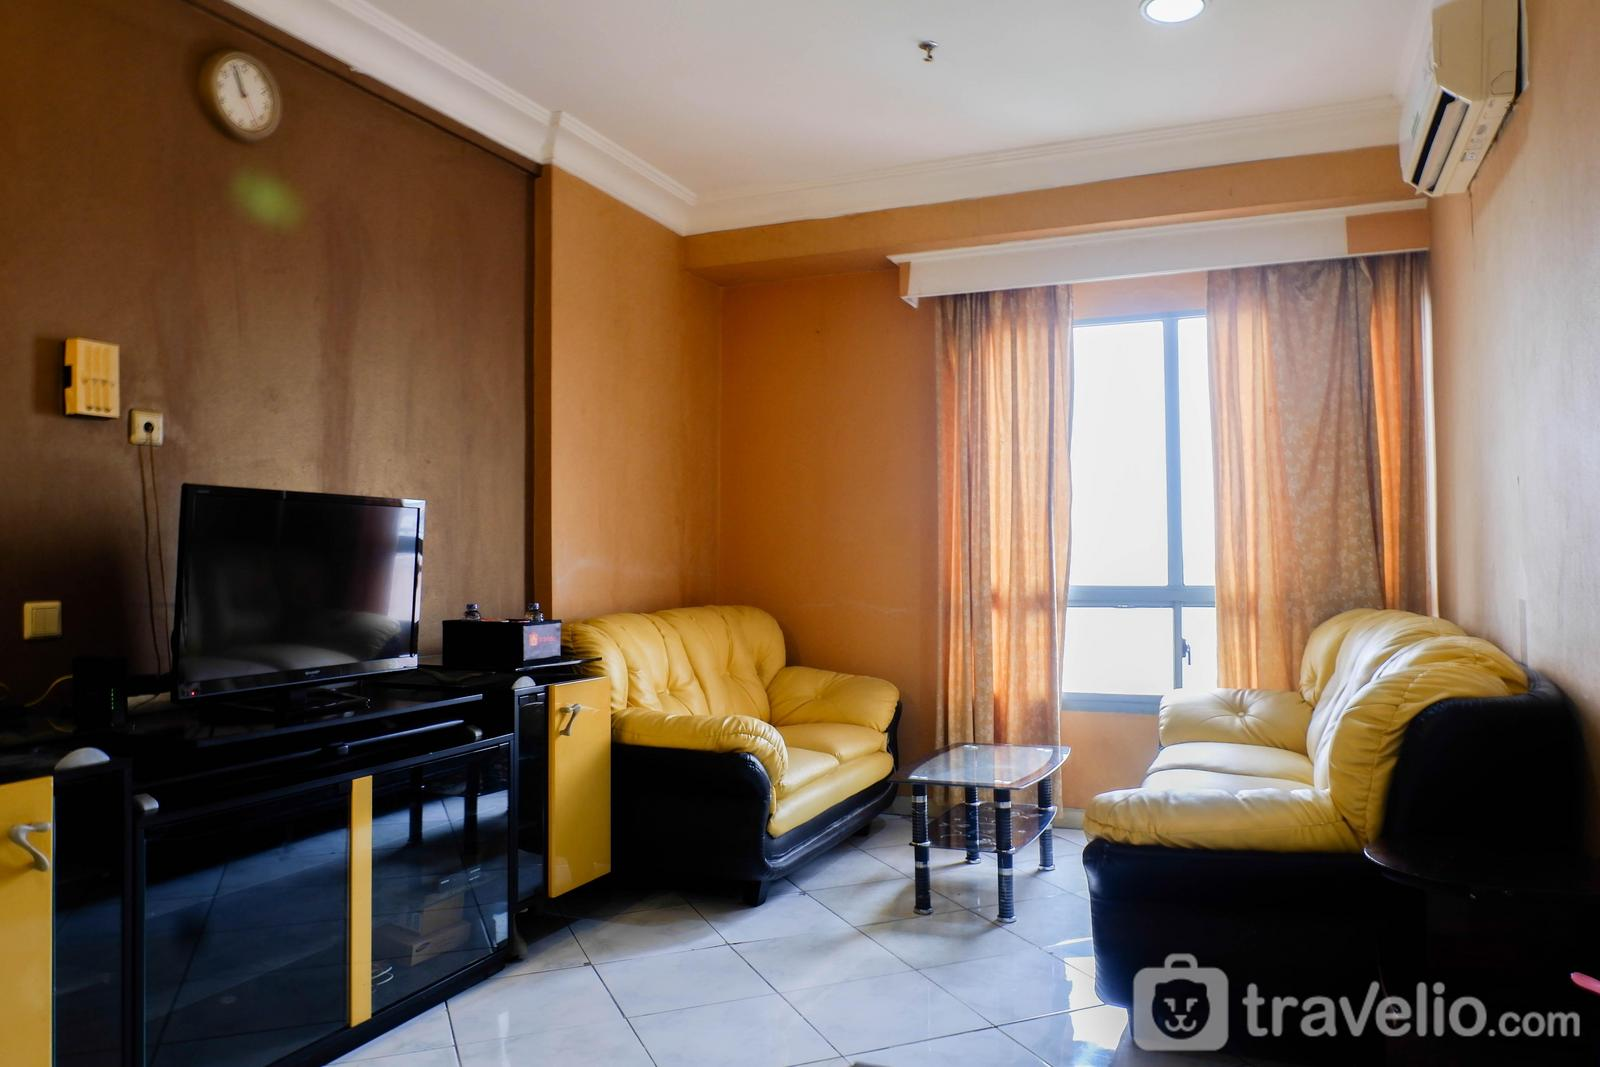 Apartemen Taman Beverly - Spacious 1BR Apartment at Taman Beverly By Travelio